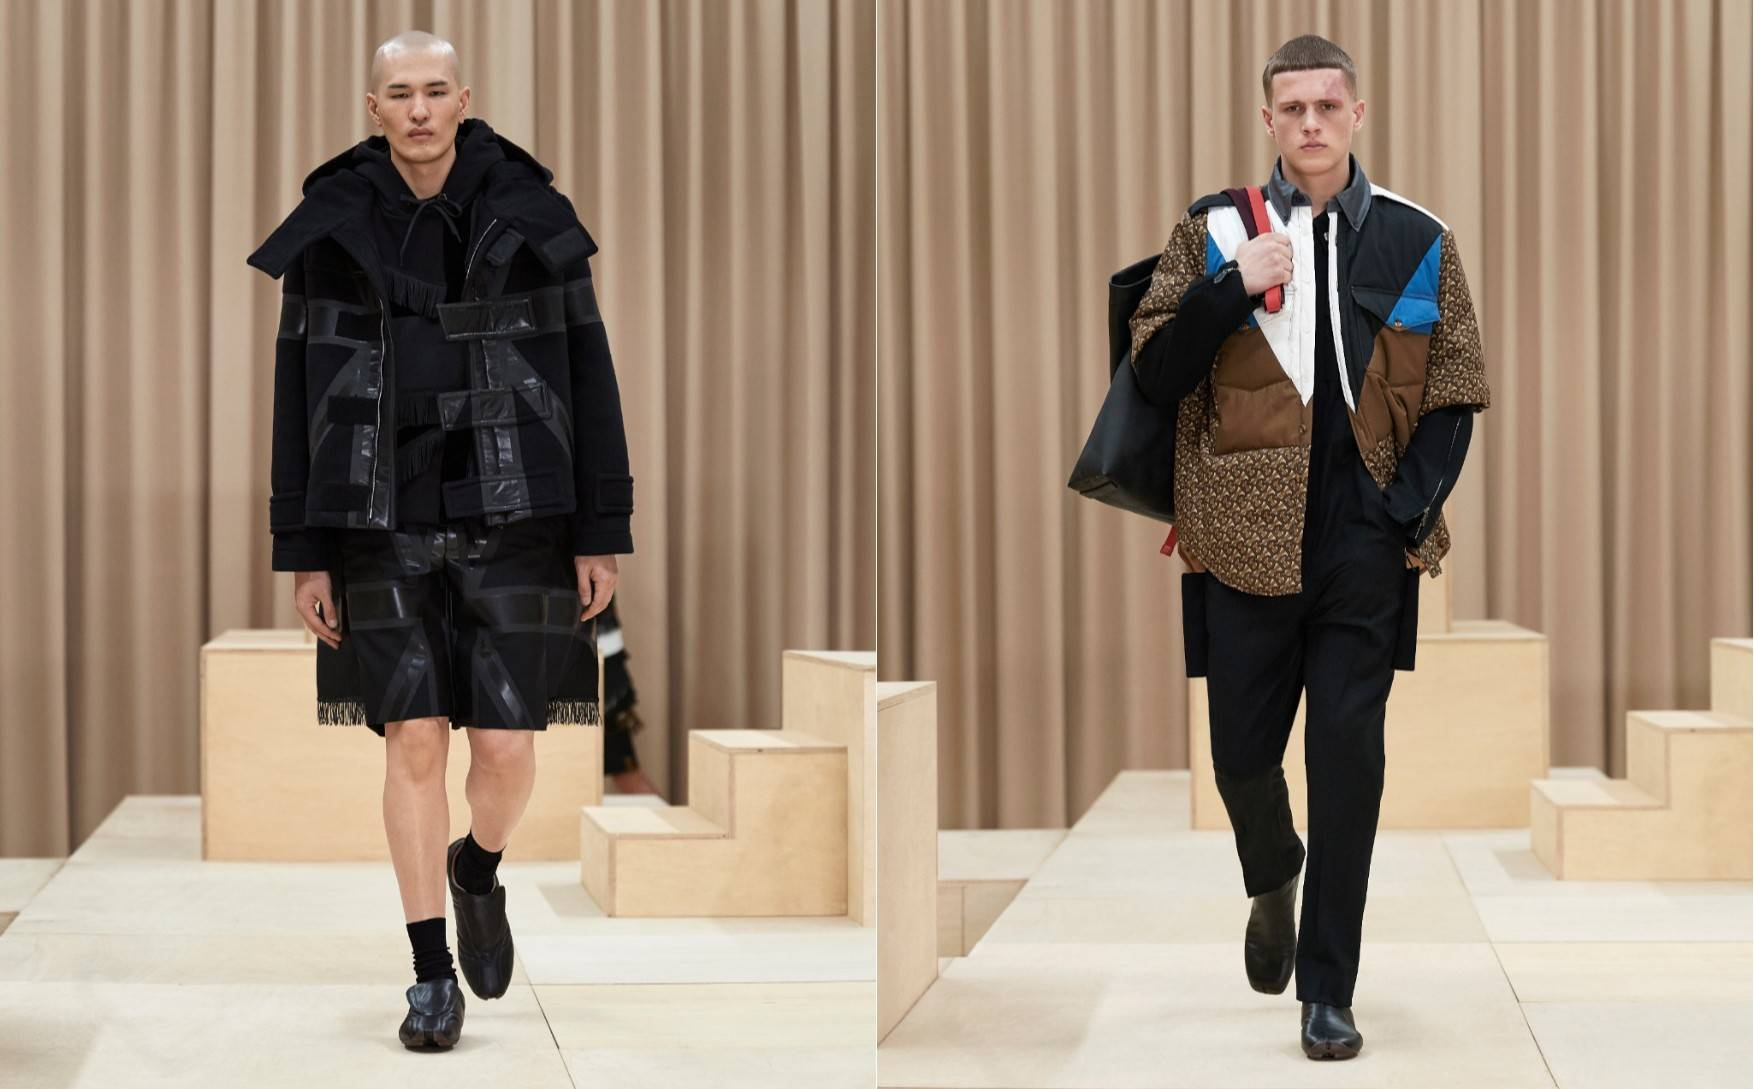 Bloomingdale's looks to transitional menswear styles for Fall 2021